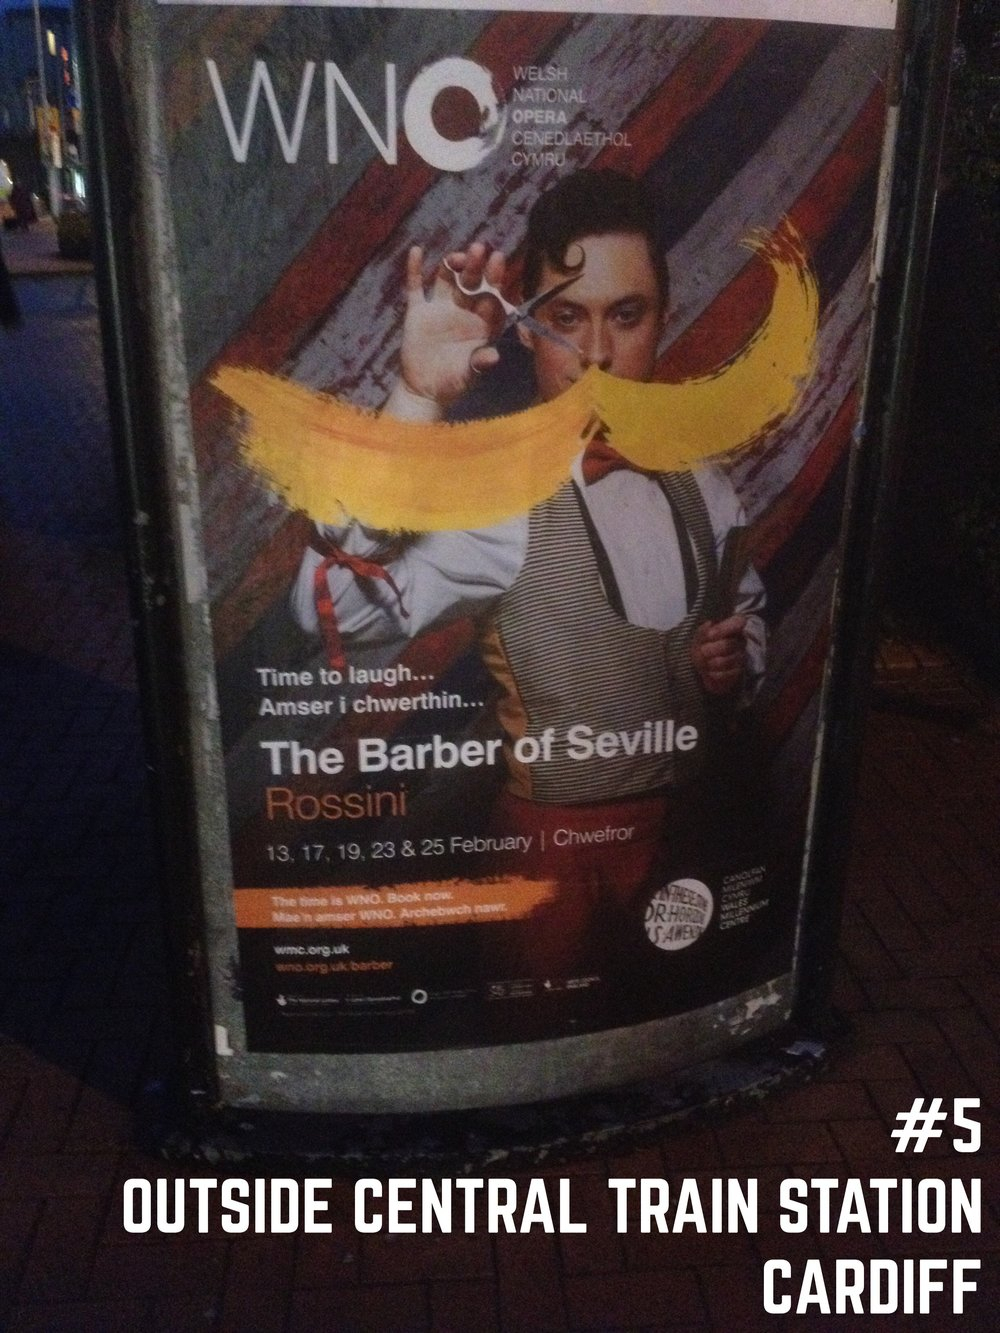 Barber of Seville poster spotted outside Cardiff Central train station